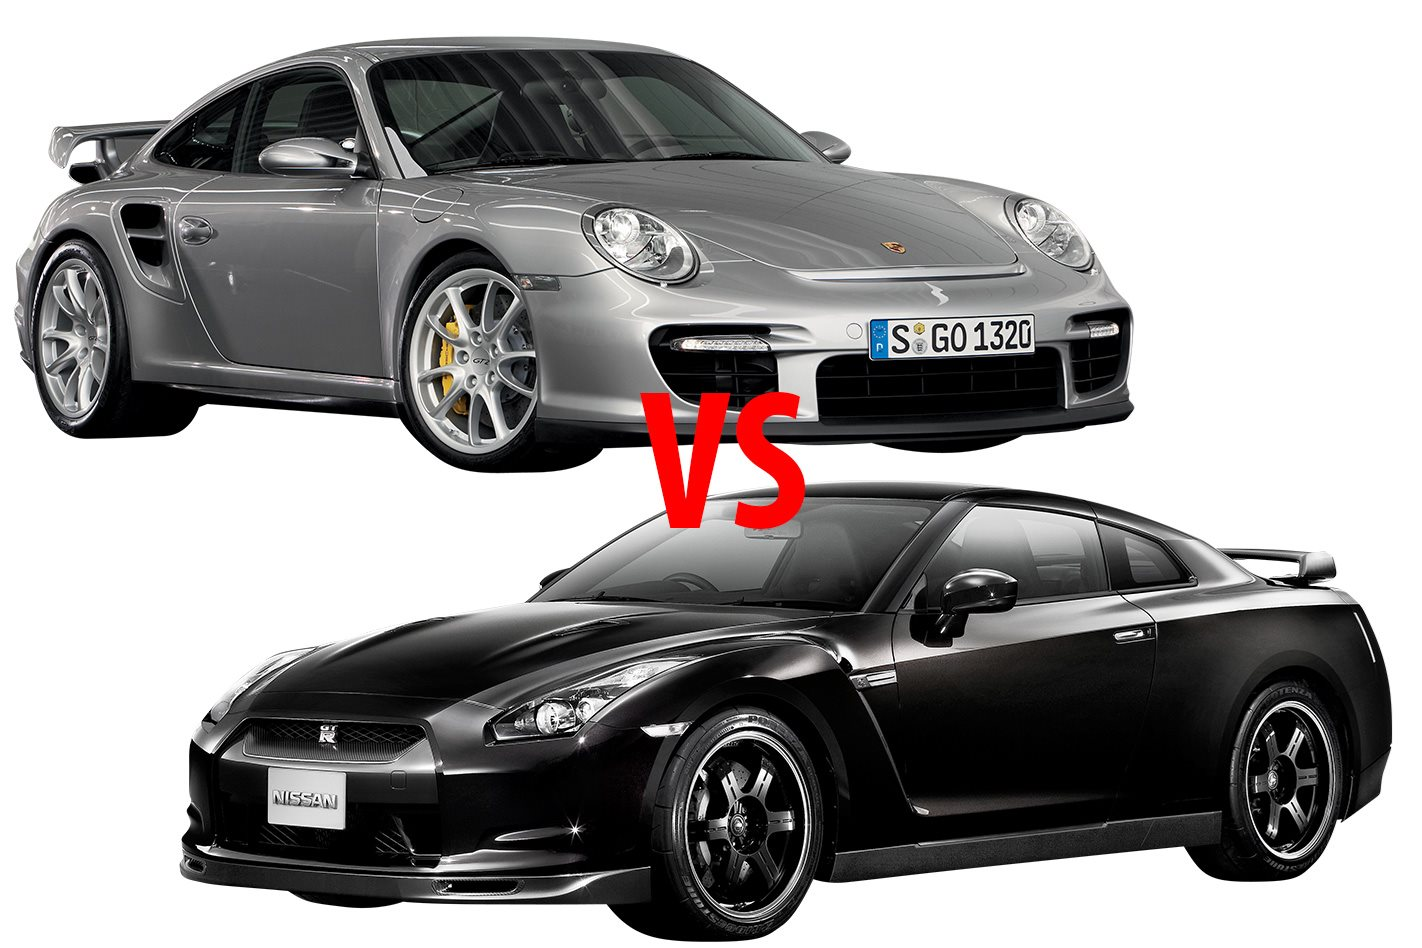 porsche 911 gt2 vs nissan gt r spec v classic motor motor. Black Bedroom Furniture Sets. Home Design Ideas